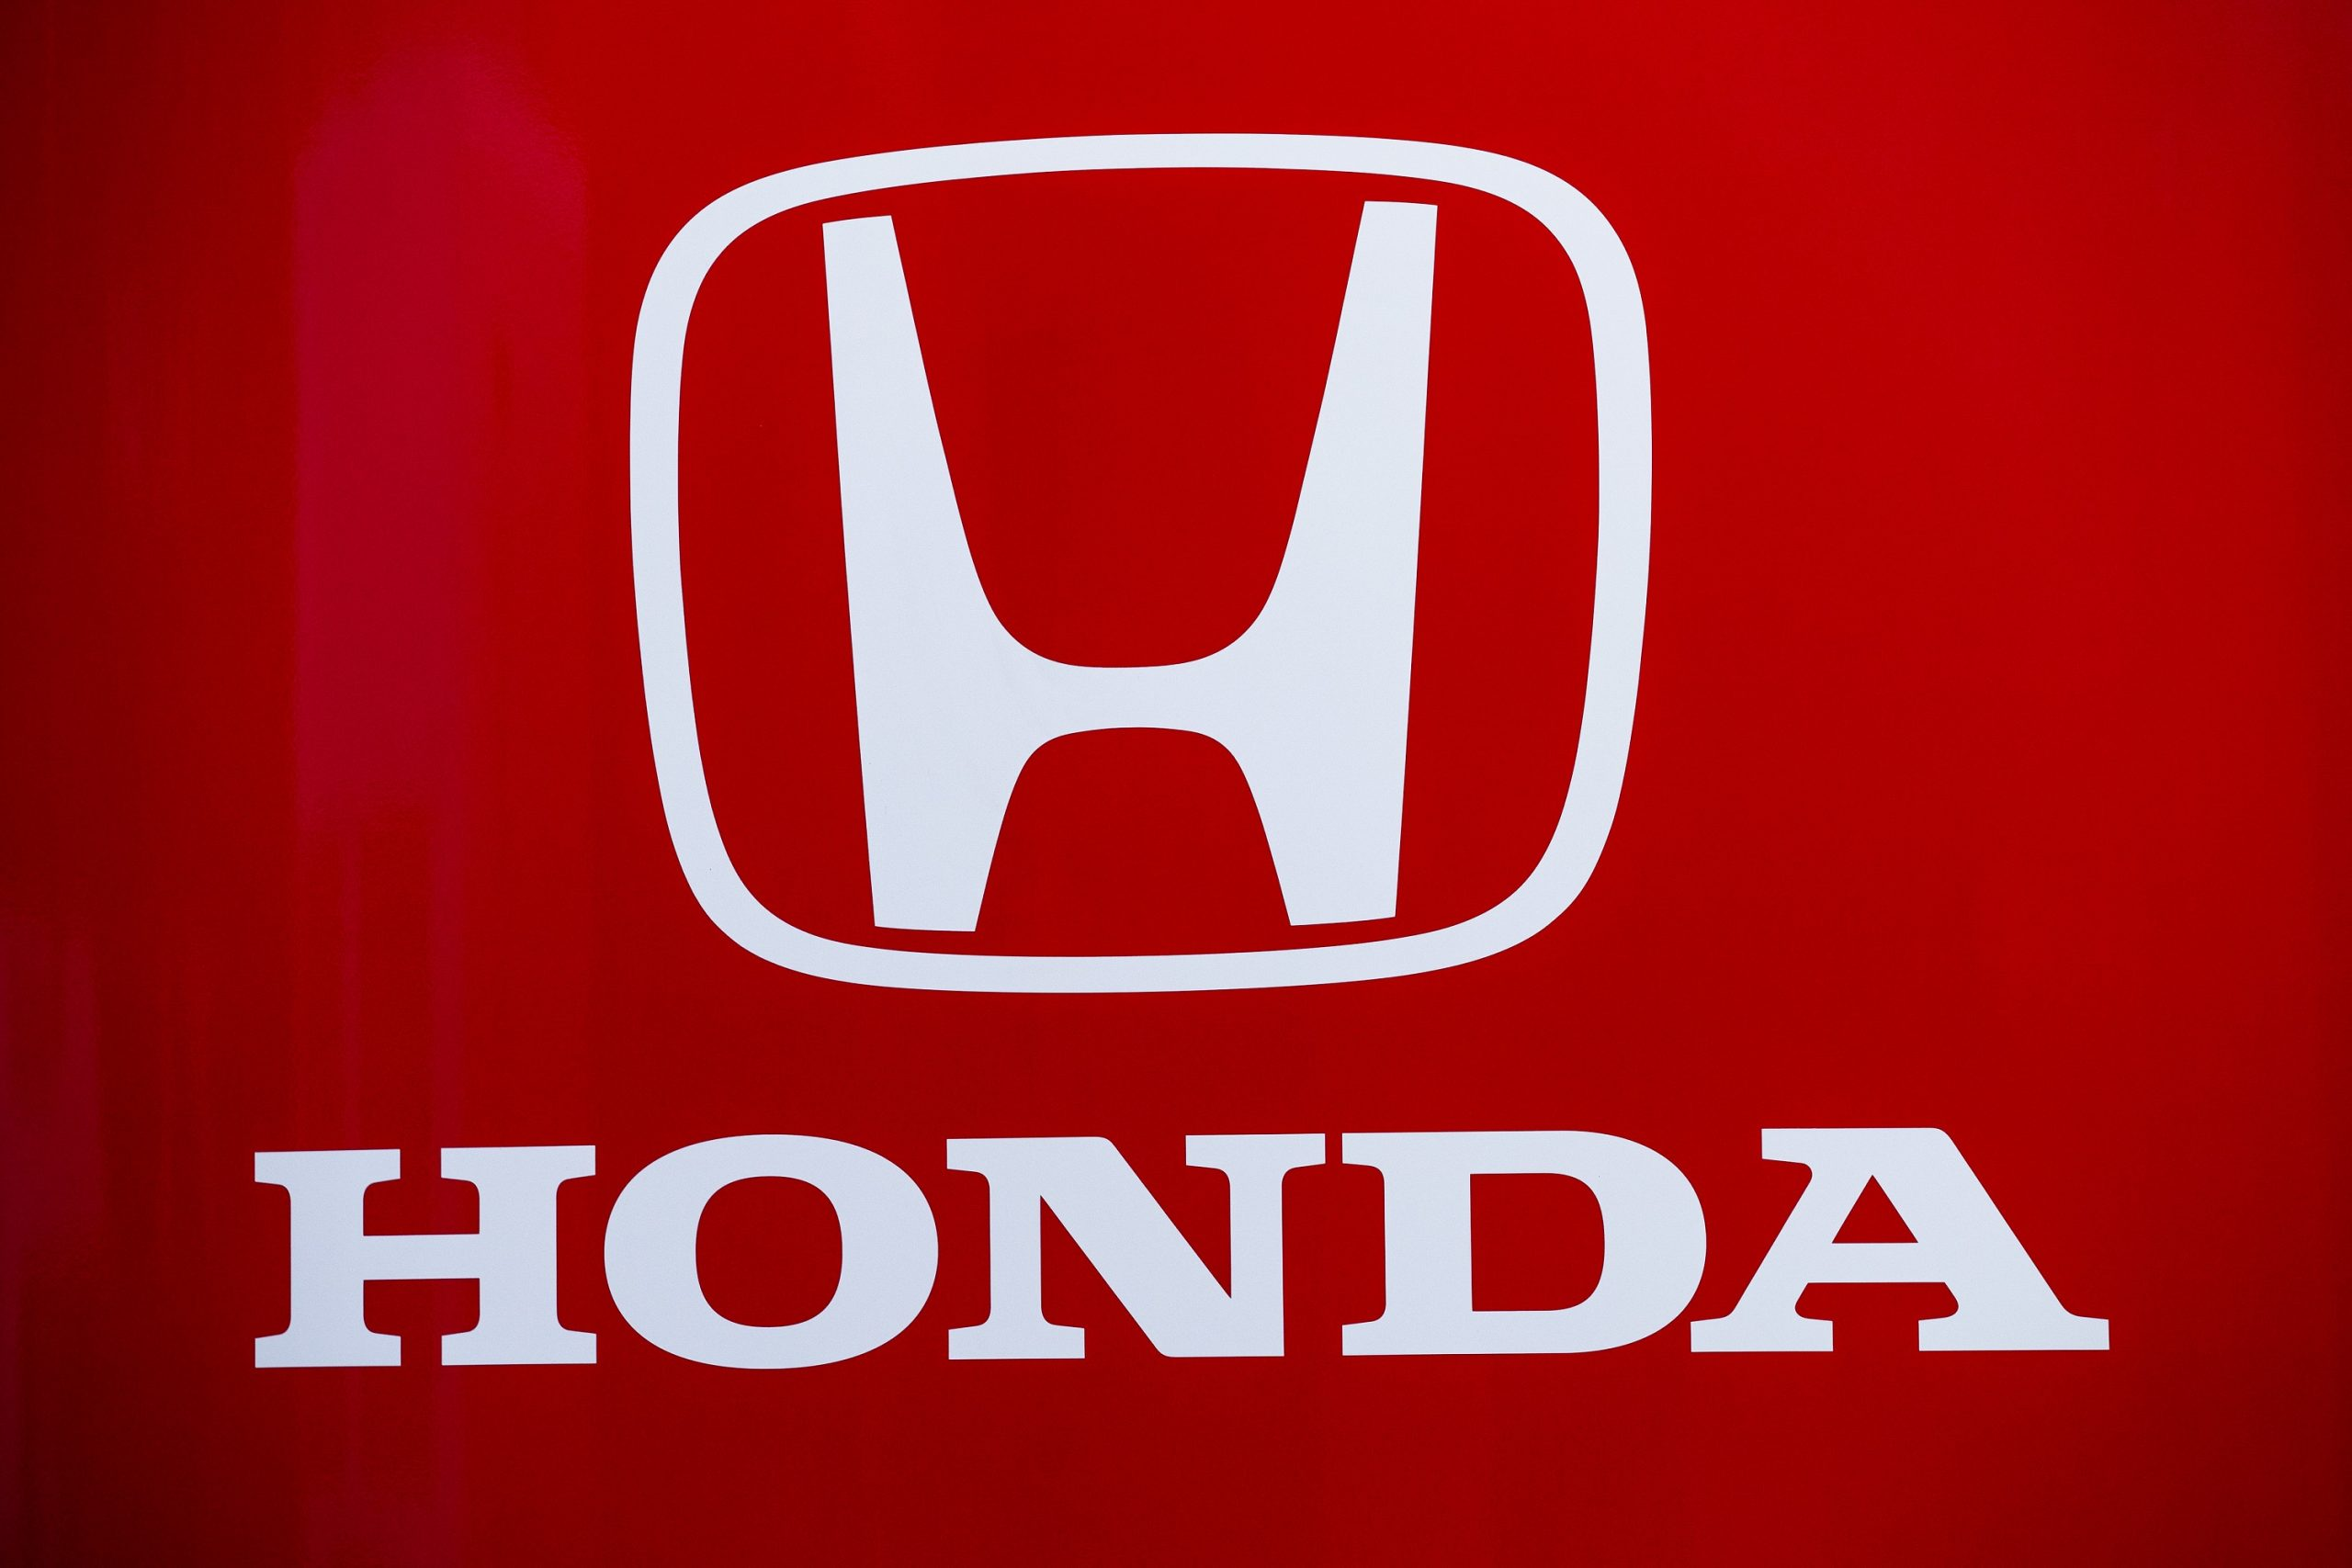 The Honda logo in white against a red background